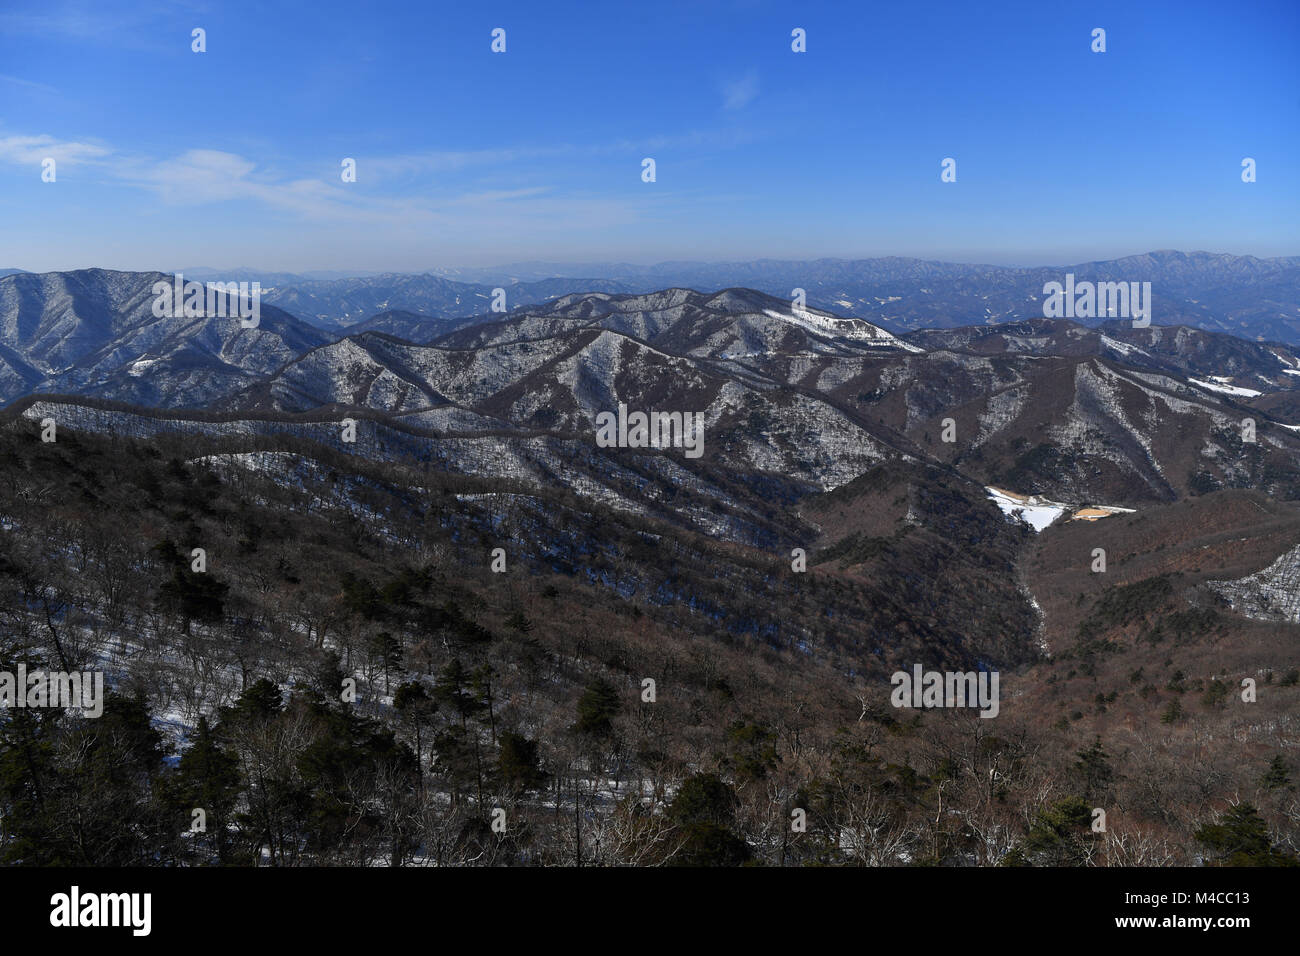 a general view from yongpyong (dragon valley) ski resort in stock